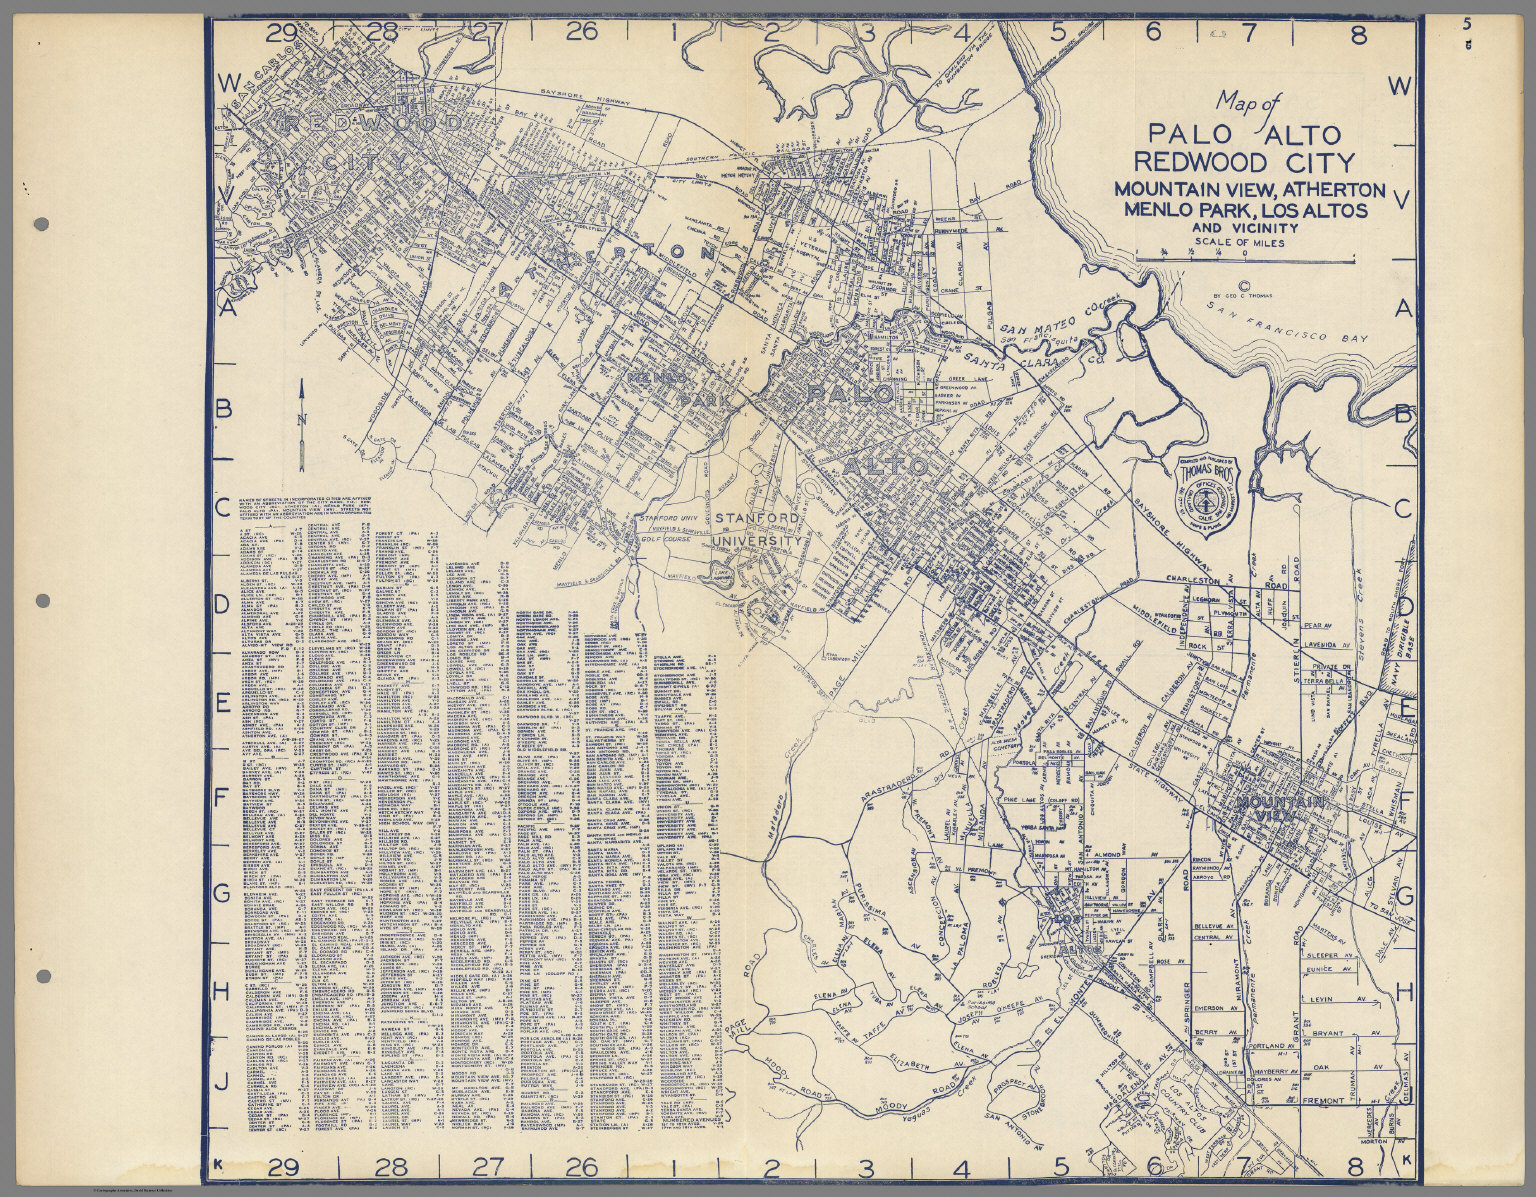 Map of Palo Alto Redwood City Mountain View Atherton Menlo Park